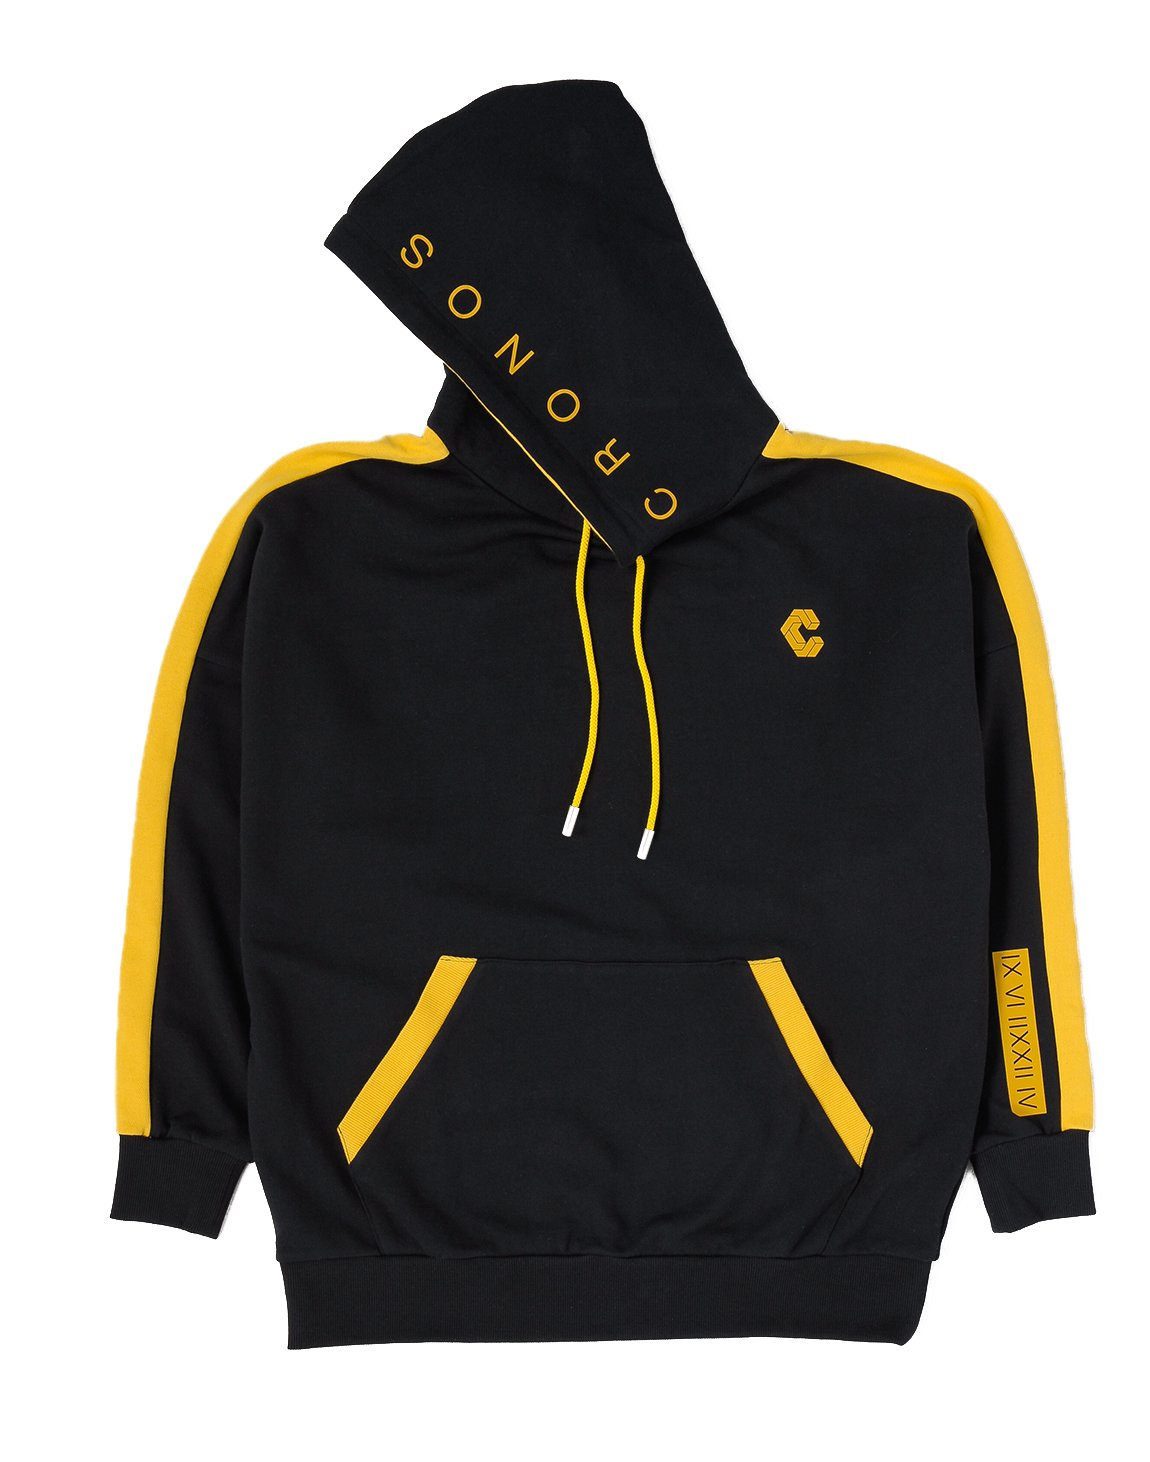 <img class='new_mark_img1' src='https://img.shop-pro.jp/img/new/icons1.gif' style='border:none;display:inline;margin:0px;padding:0px;width:auto;' />CRONOS ARM LINE HOODY【SP.BLACK】